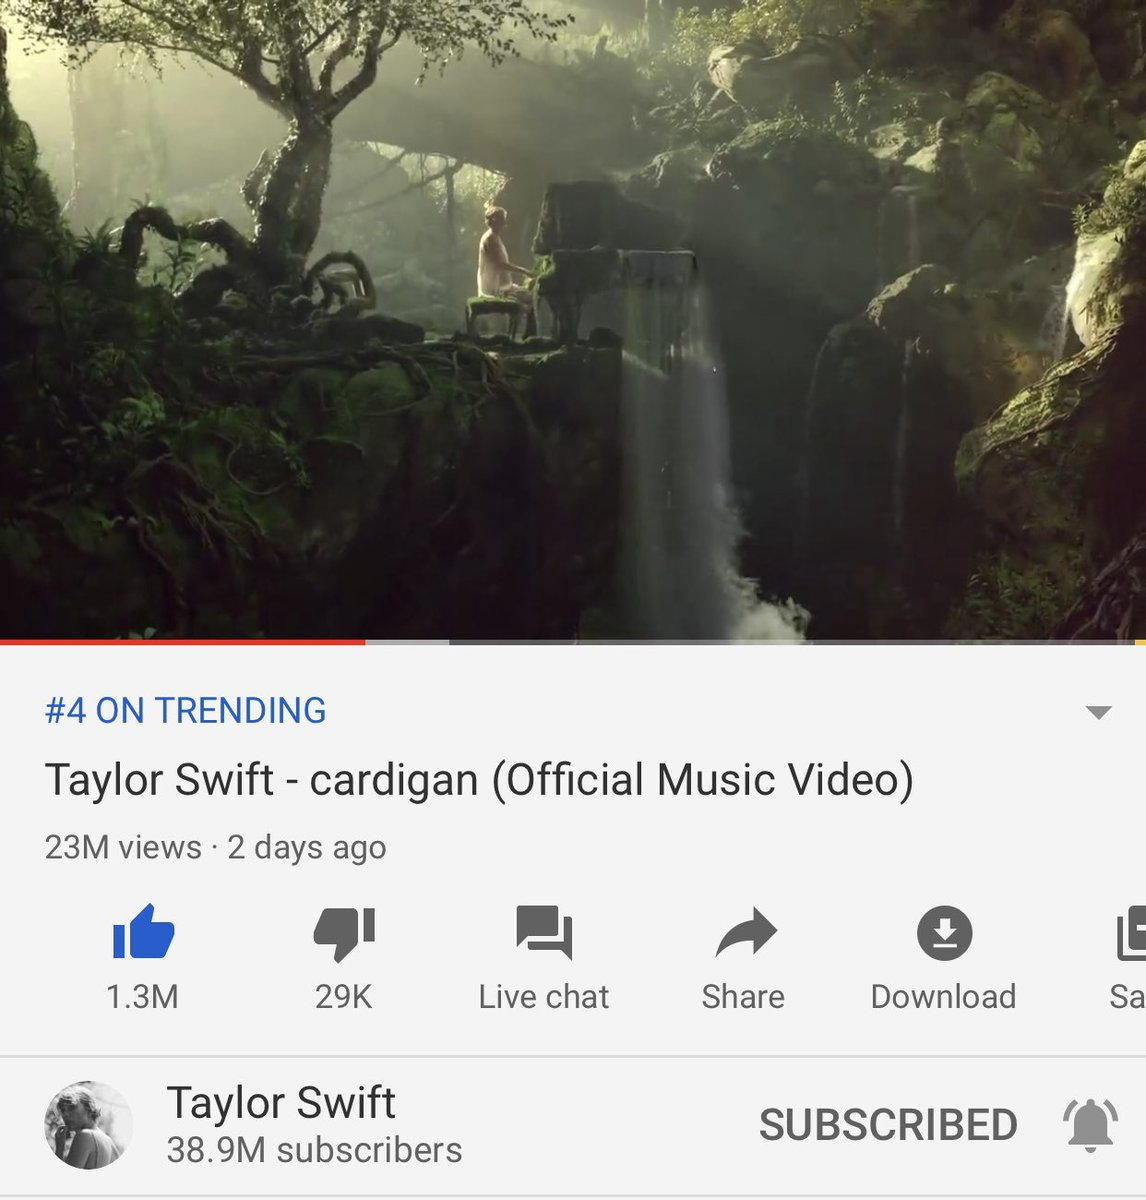 Taylor Swift News On Twitter Cardigan Is Currently Trending At 4 On Youtube With Over 22 Million Views And 1 3 Million Likes What Is Your Favorite Scene From The Video